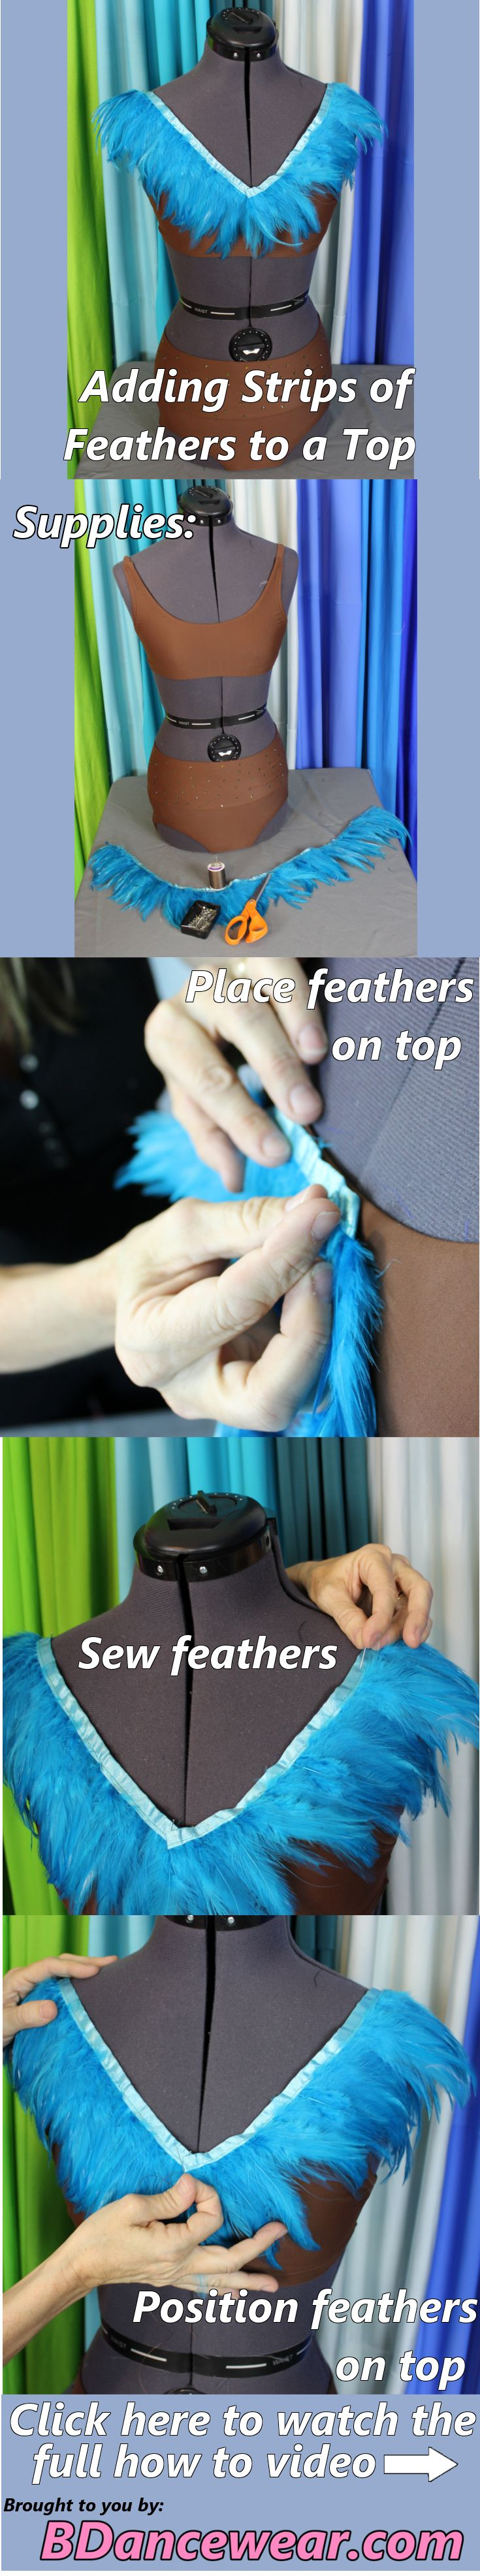 Adding strips of feathers to a top for a DIY dance costume.